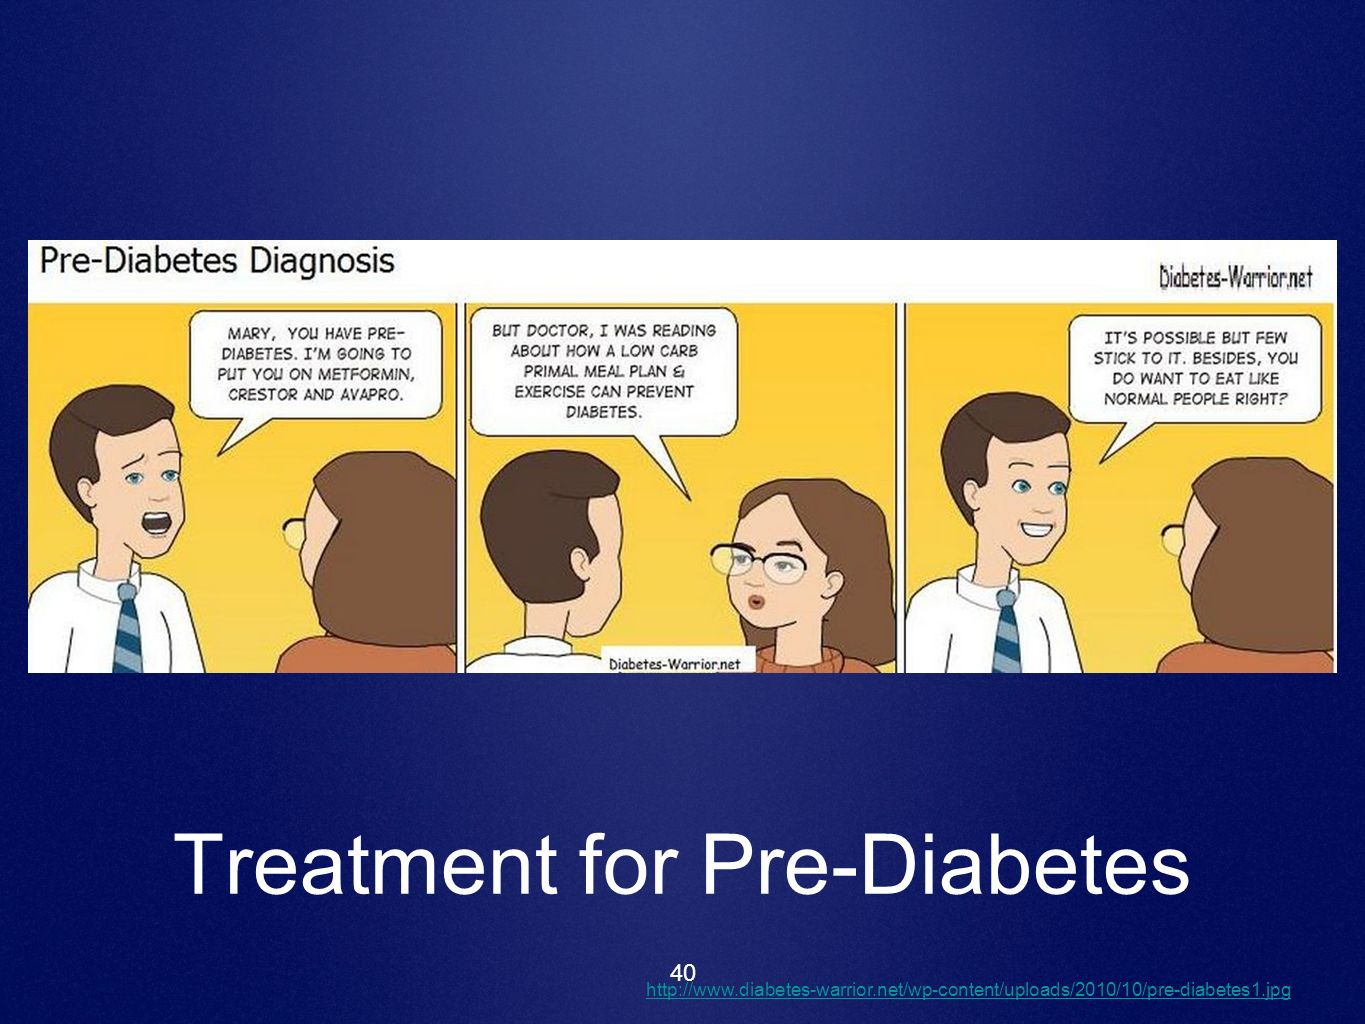 Treatment for Pre-Diabetes